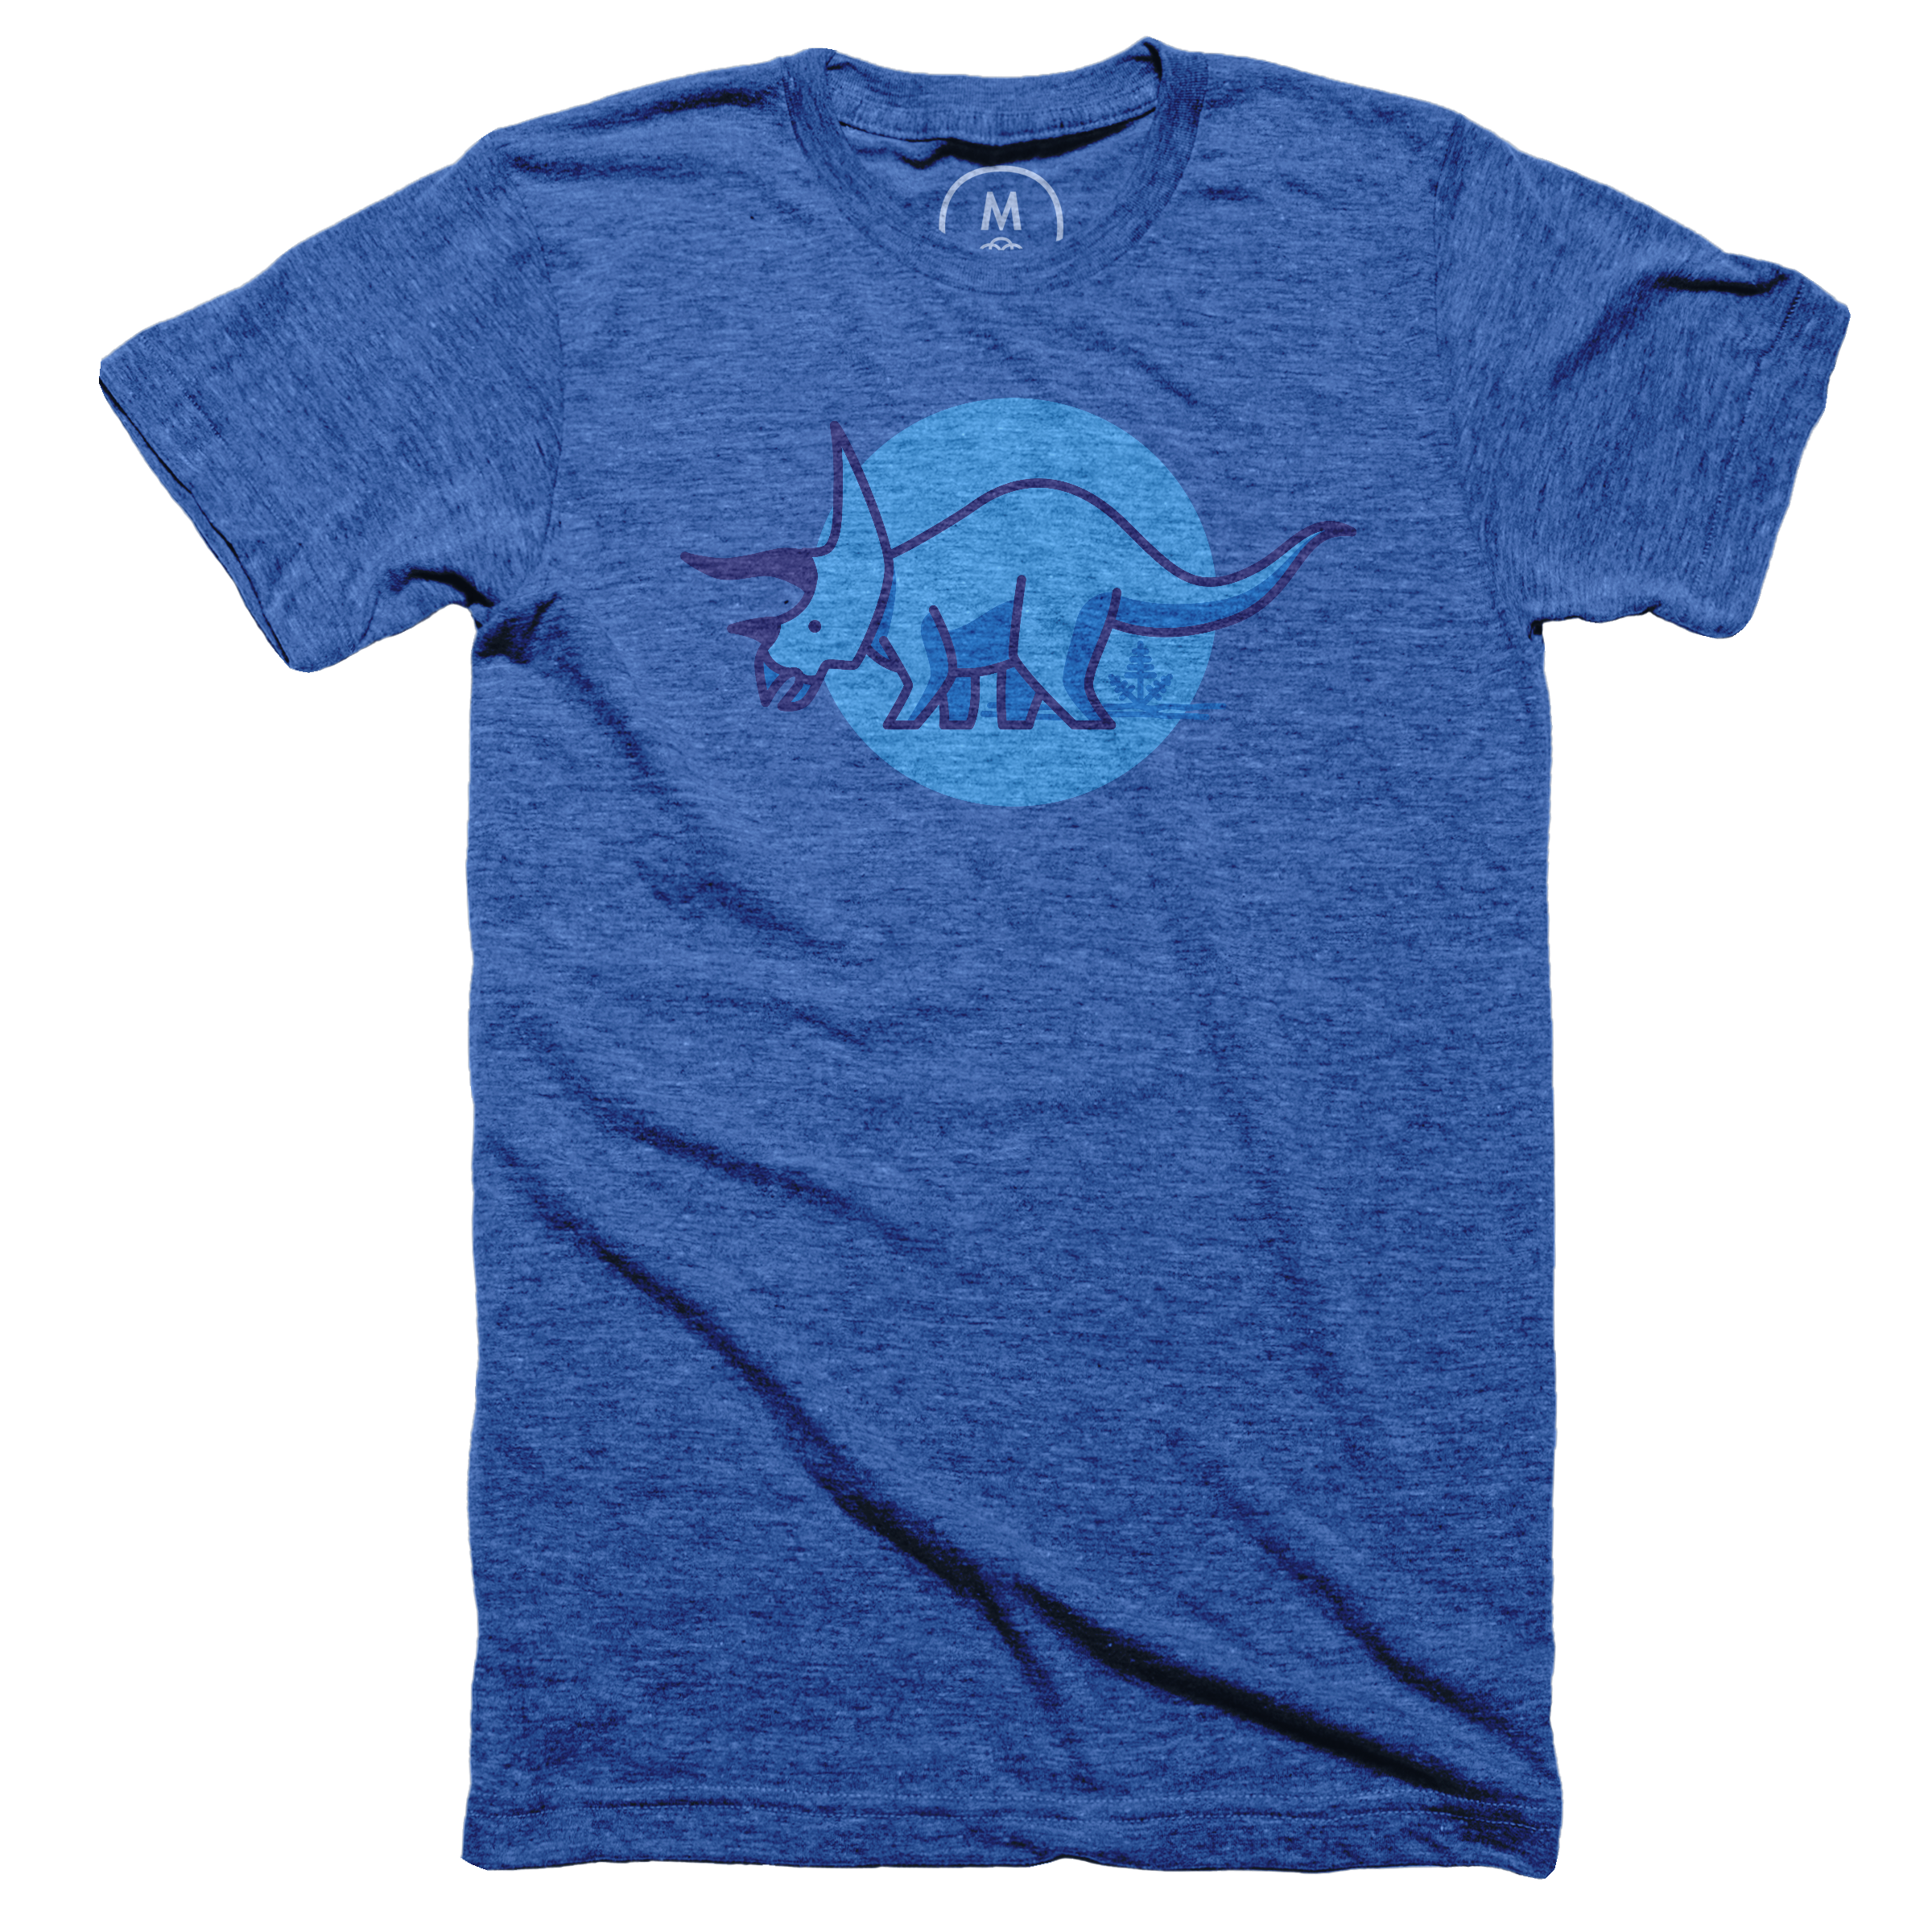 Tee is for Triceratops